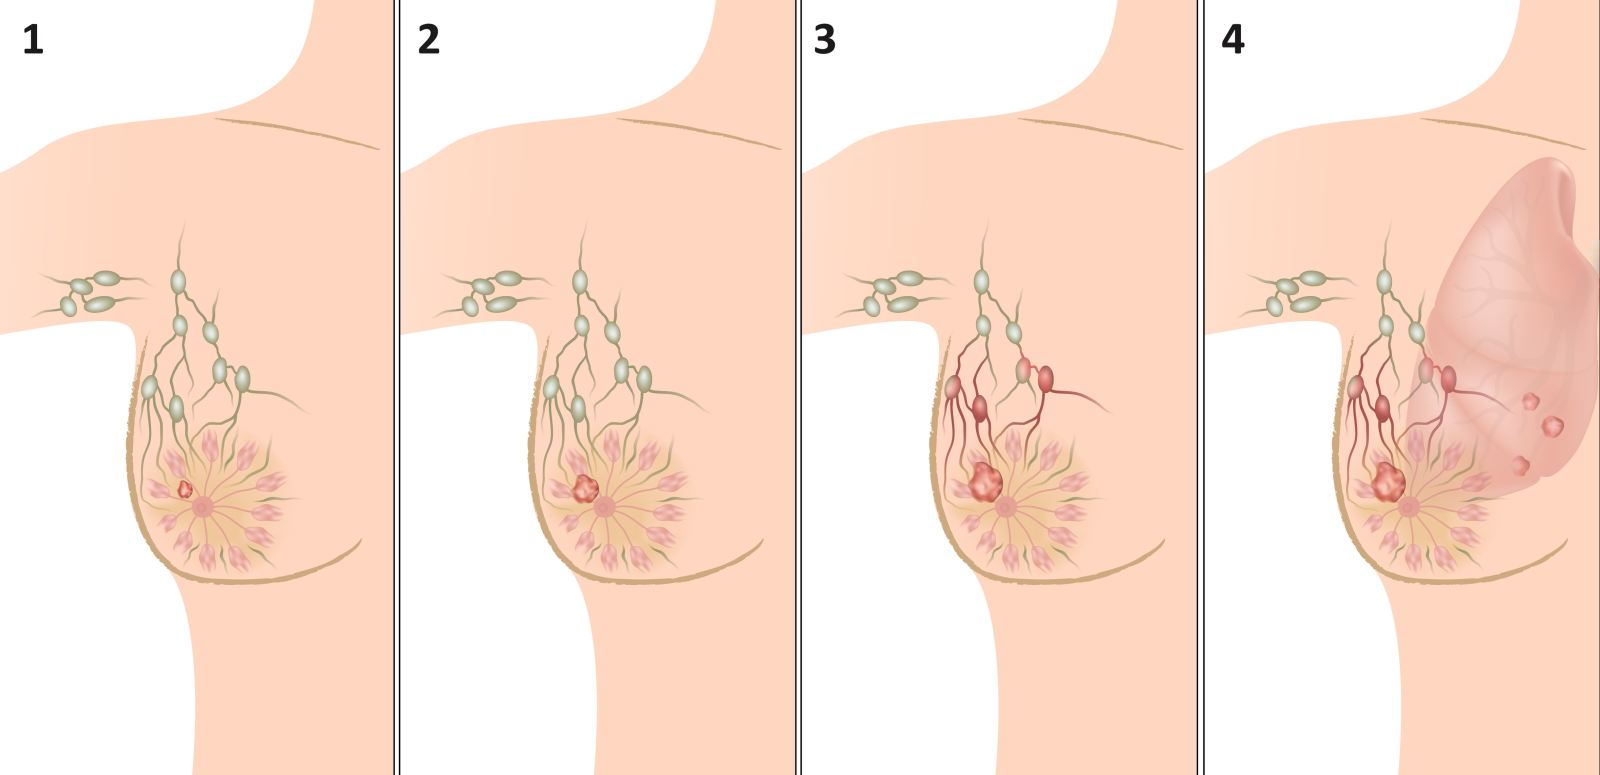 Breast Cancer: Treatment